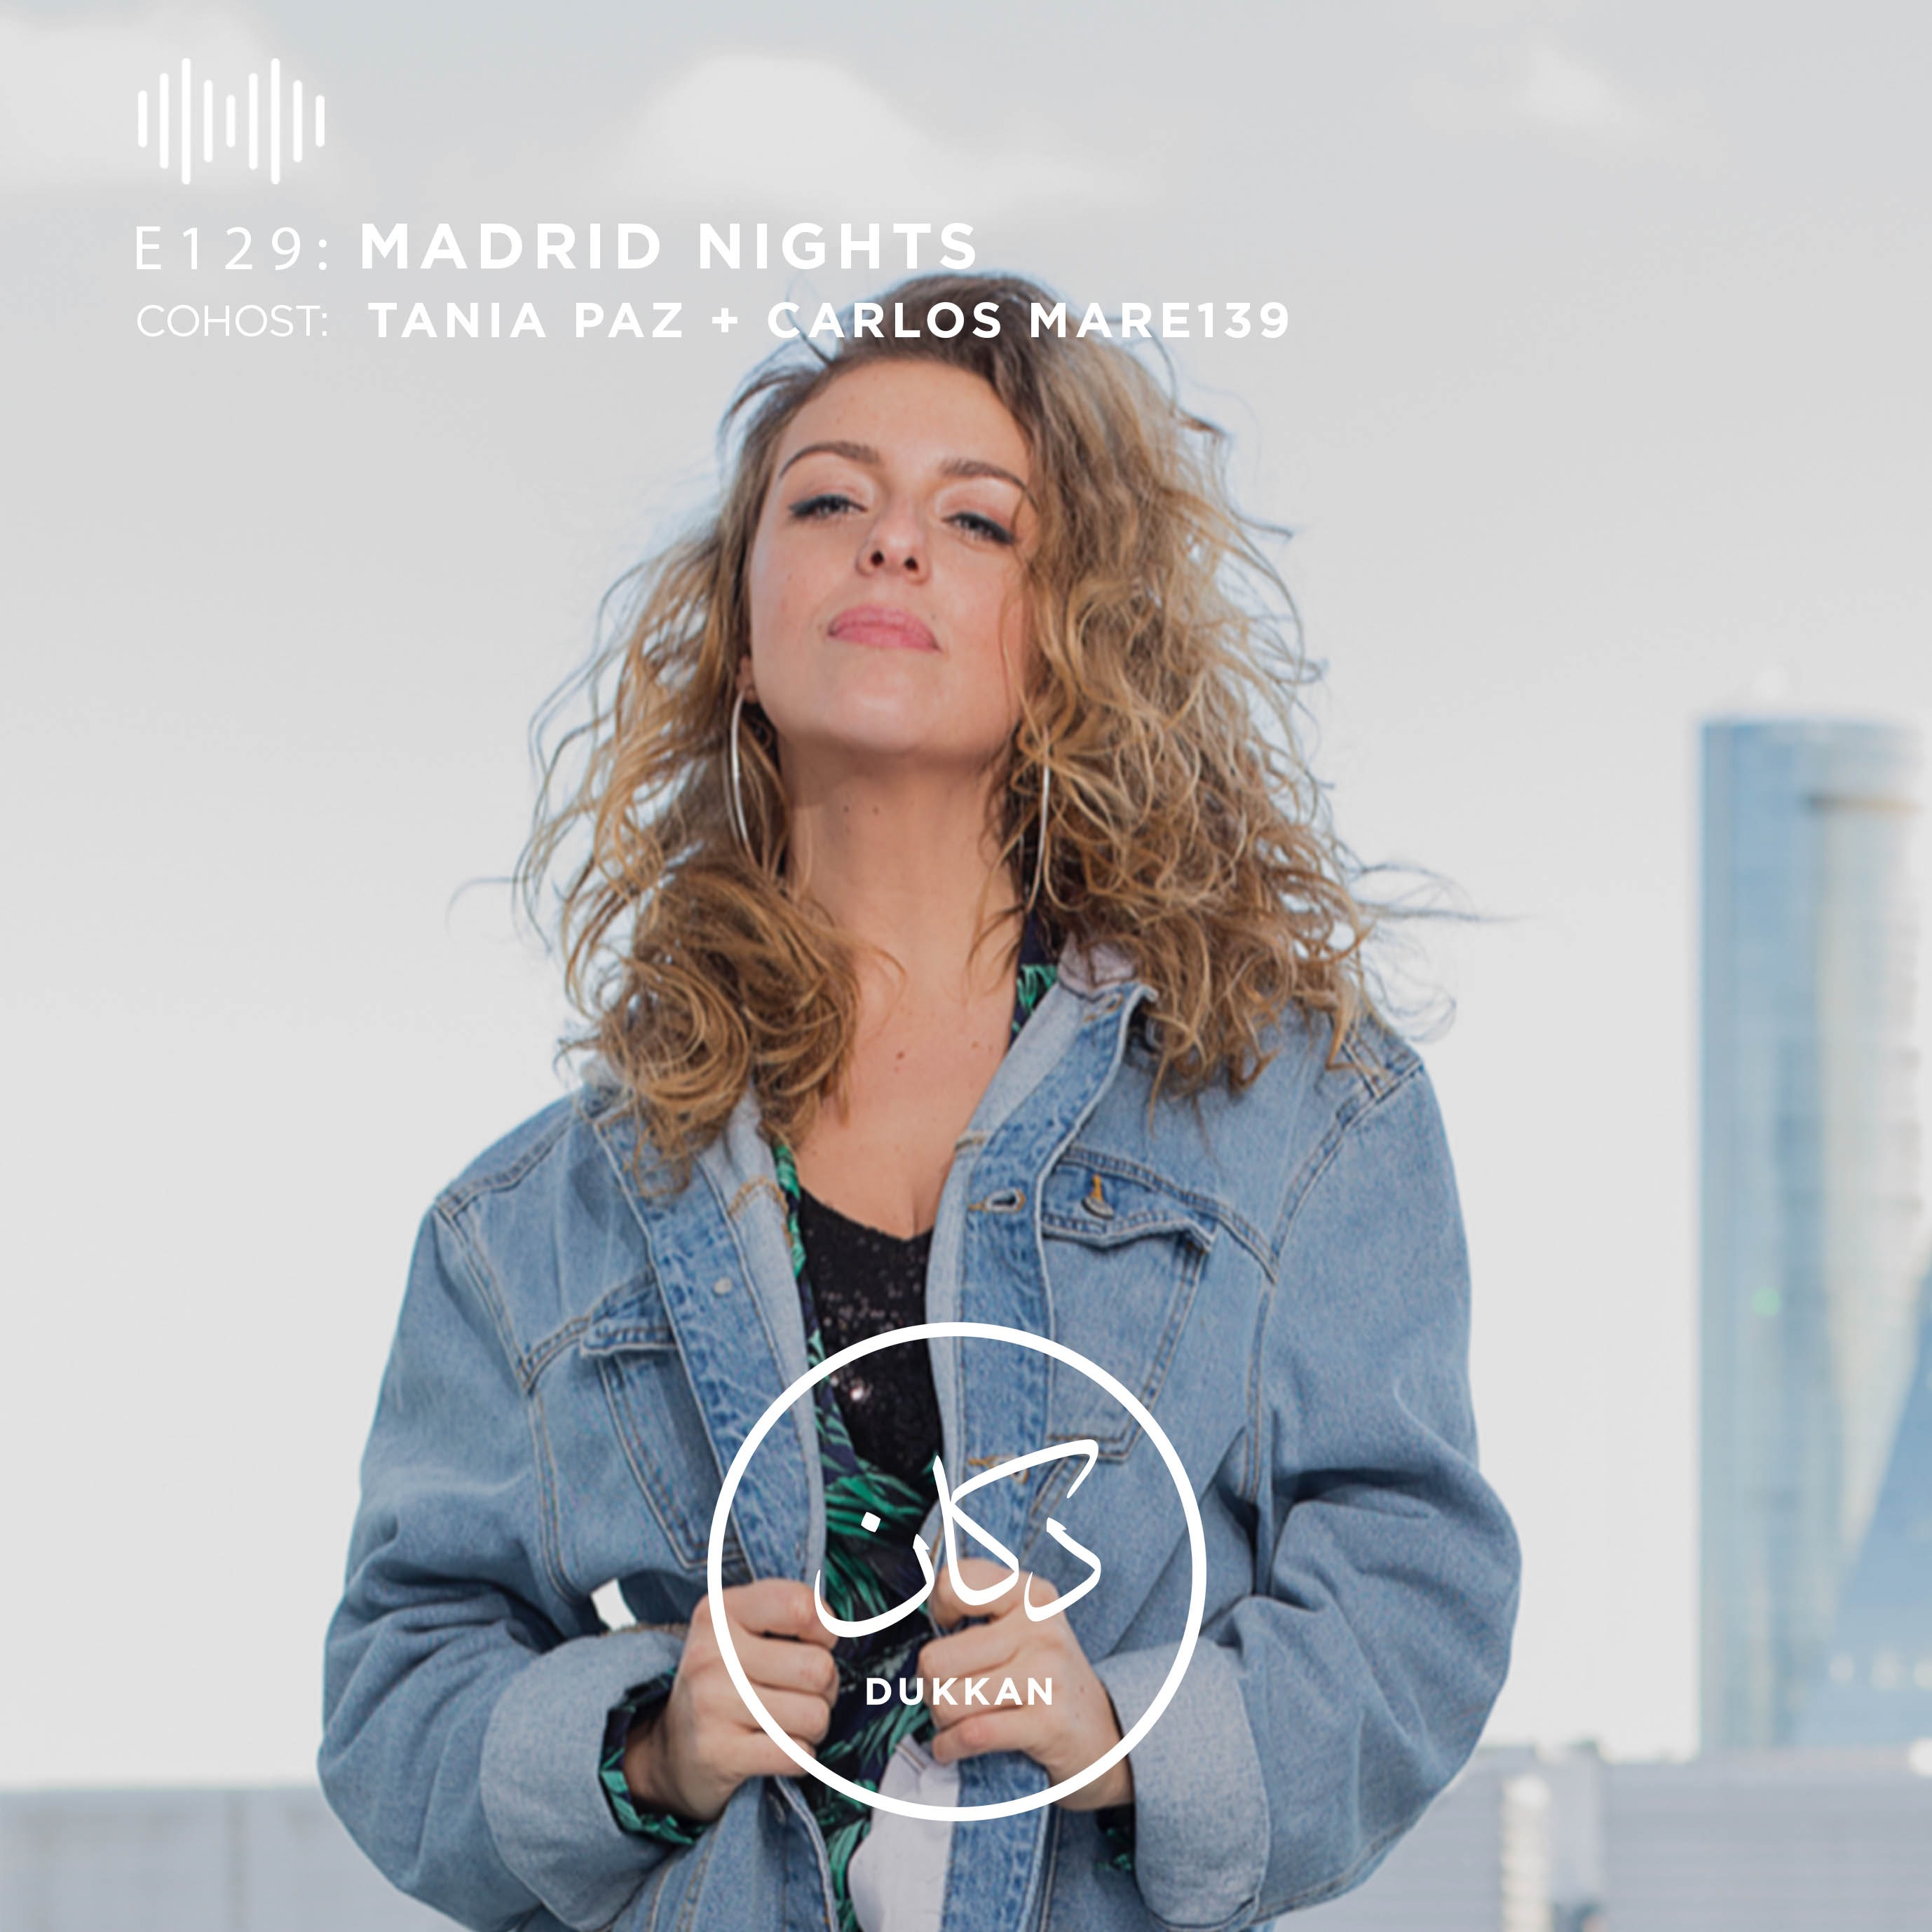 E129: Madrid Nights (Cohosts: Tania Paz & Carlos Mare139)